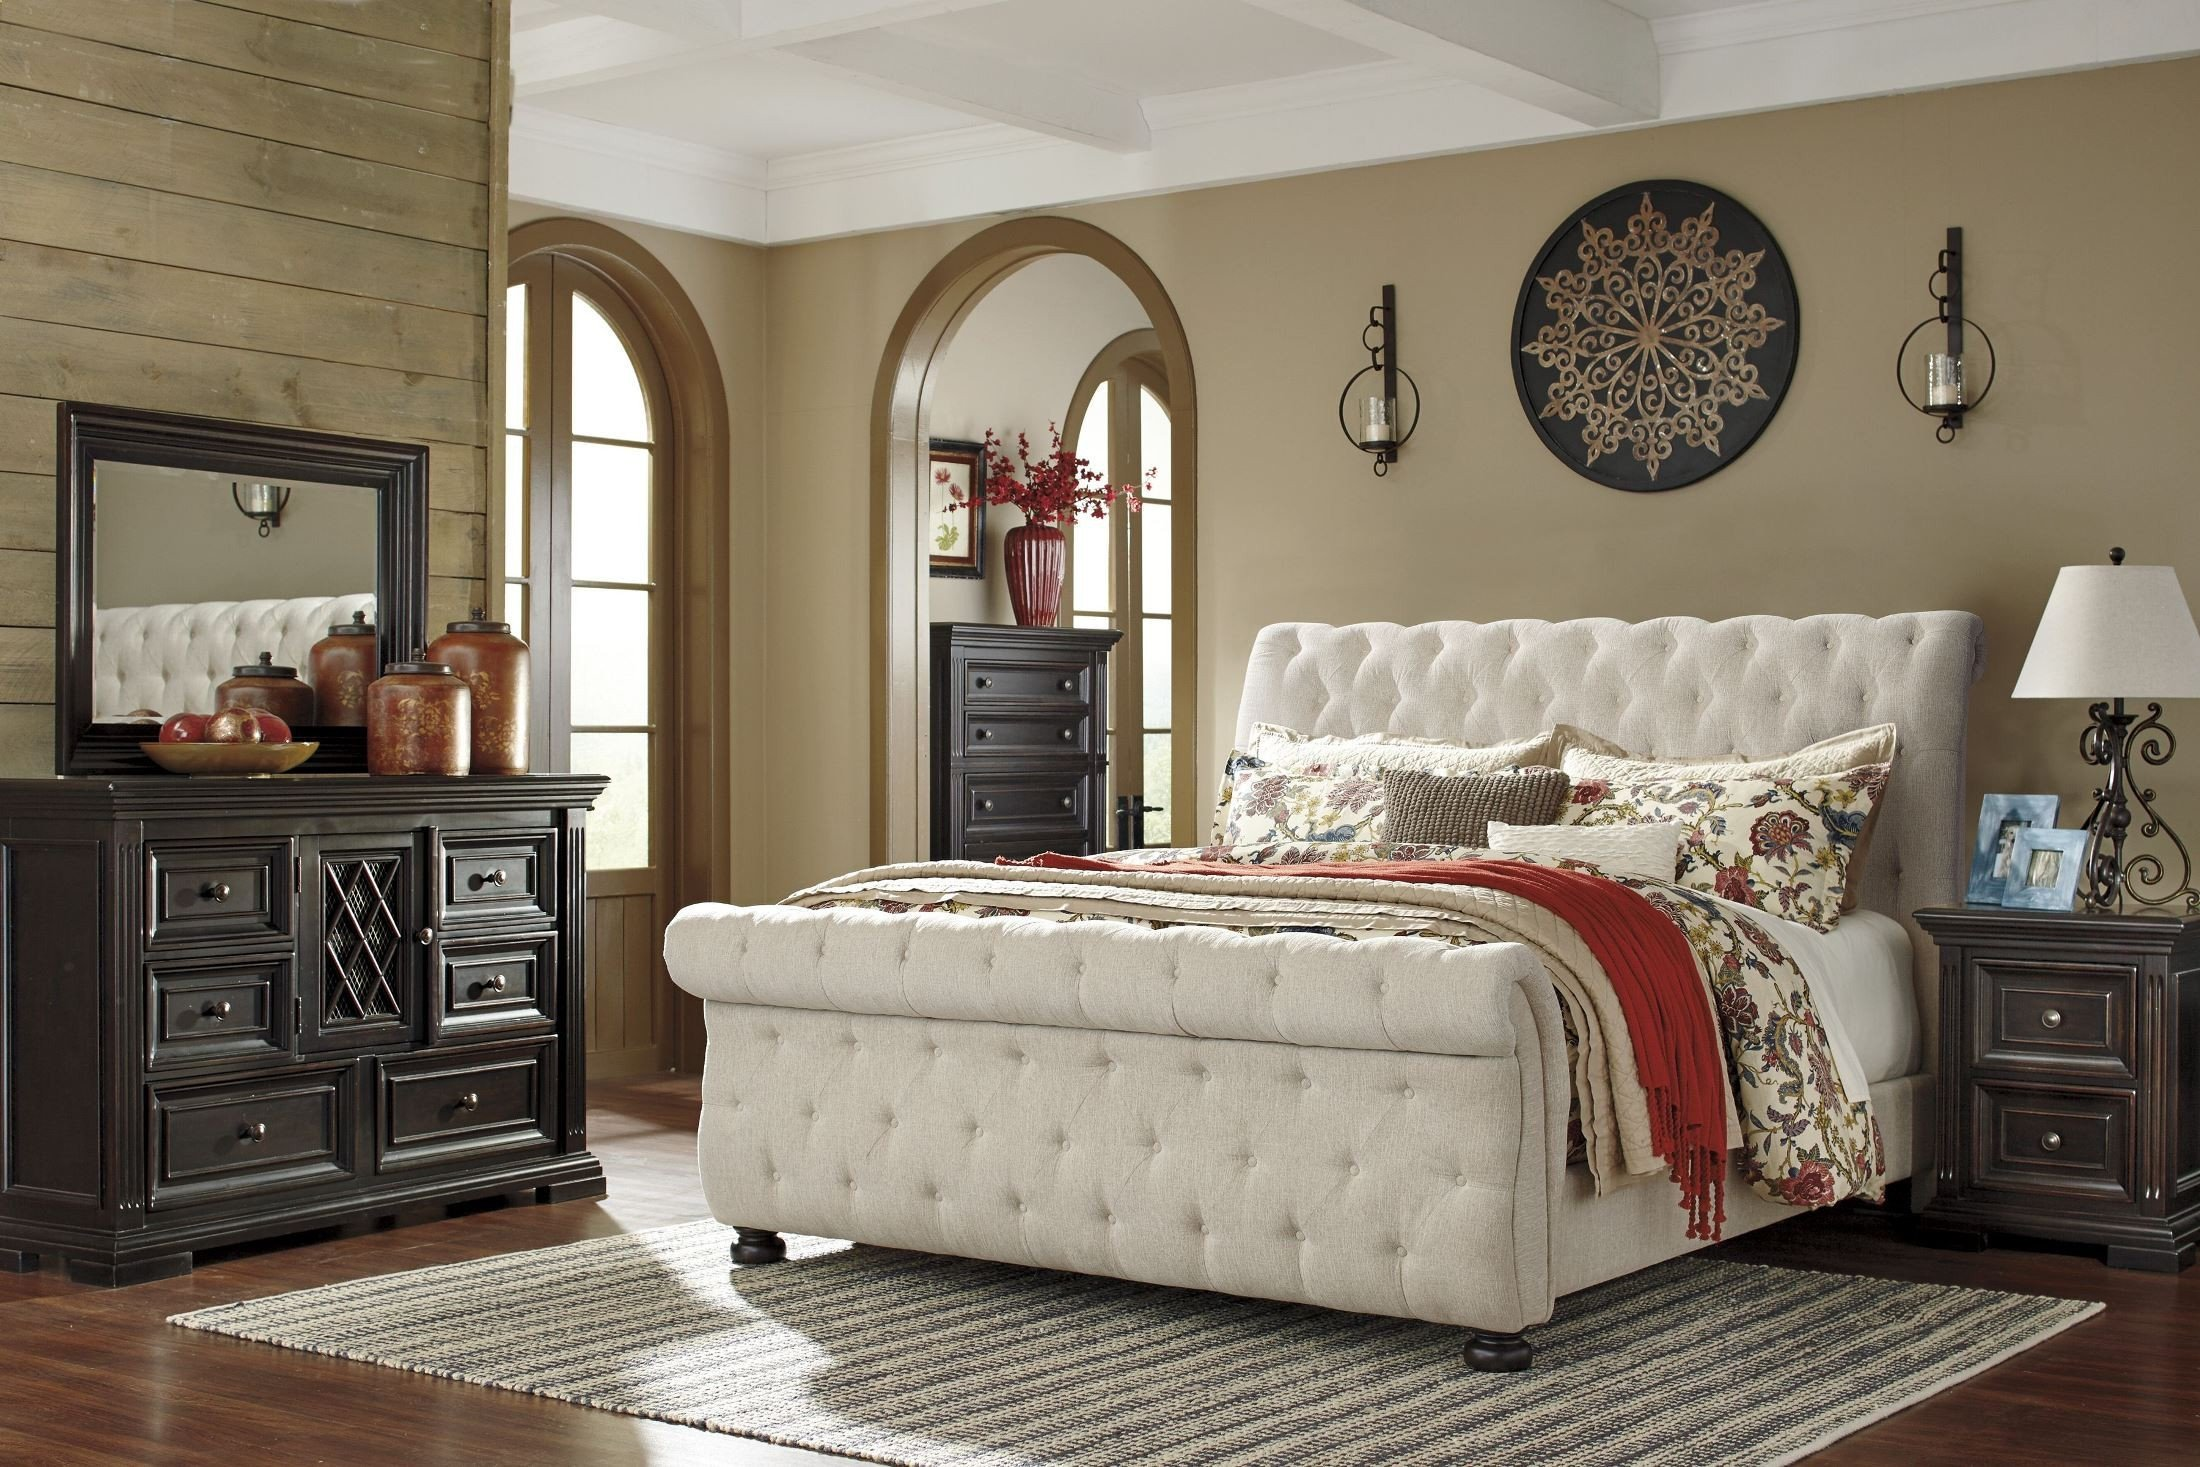 Ashley Queen Bedroom Set Best Of Bedroom Royal Queen Sleigh Bed Frame with Elegant Creative